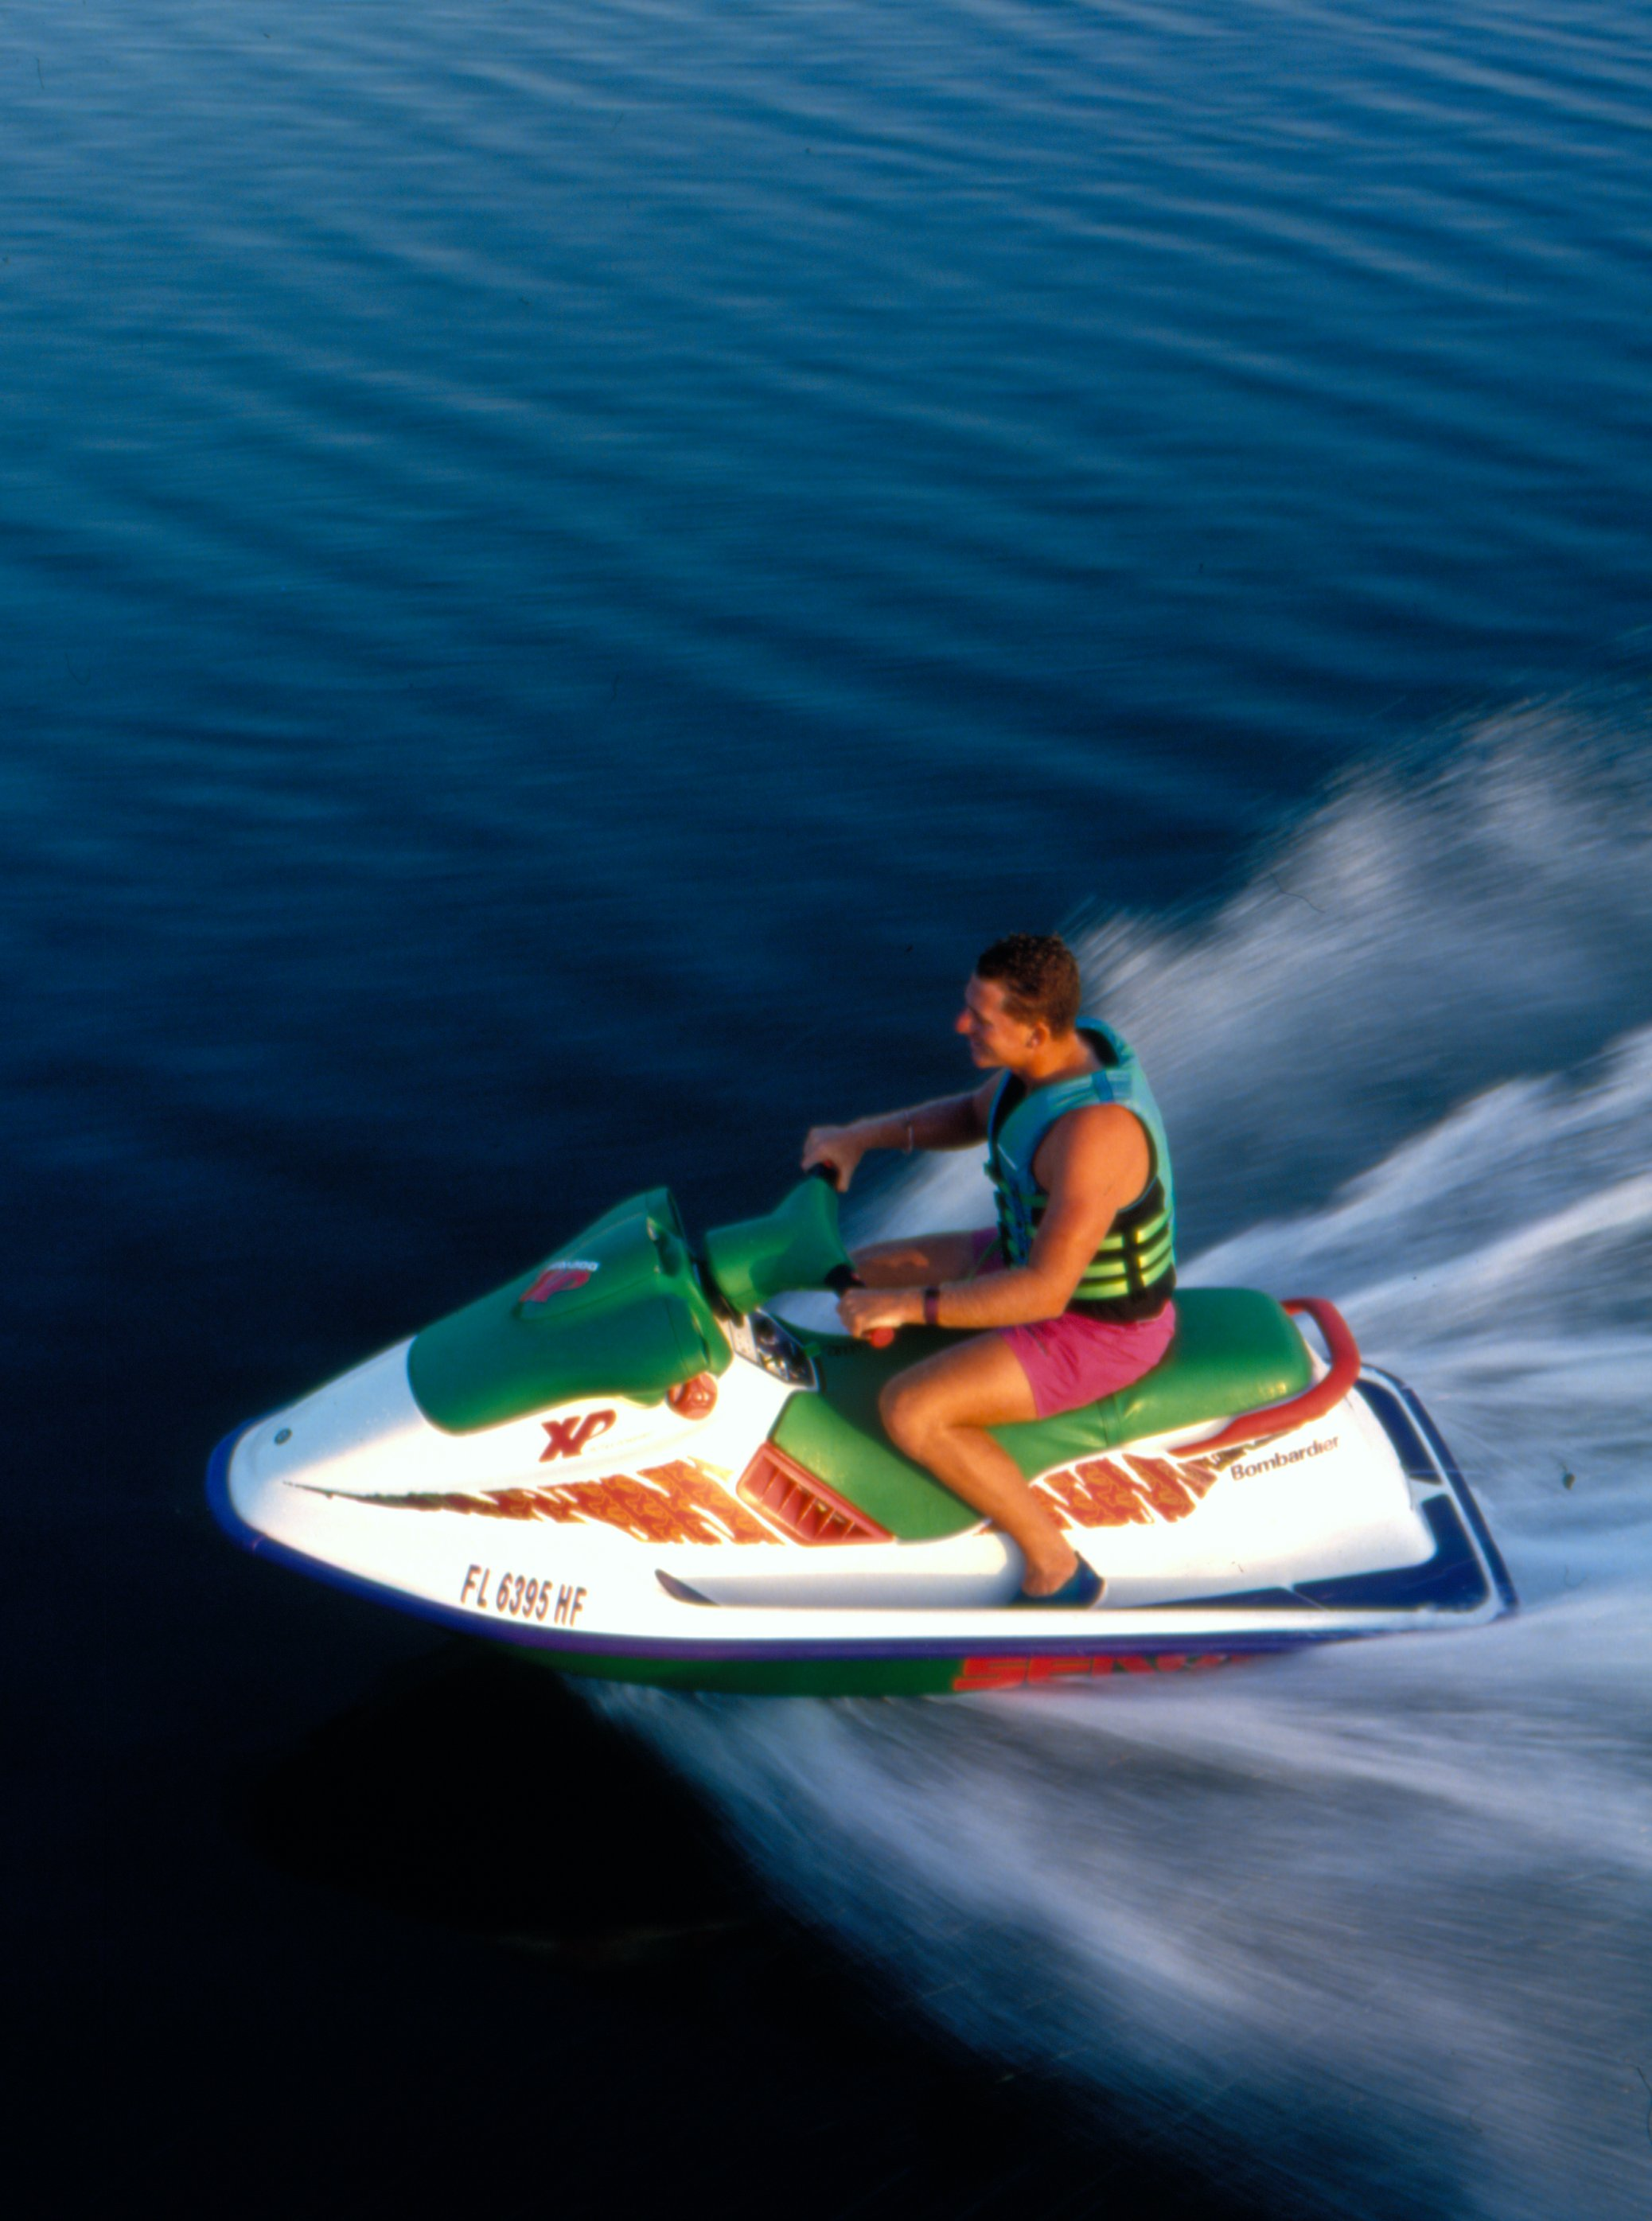 1994 xp behind the scenes sea doo onboard